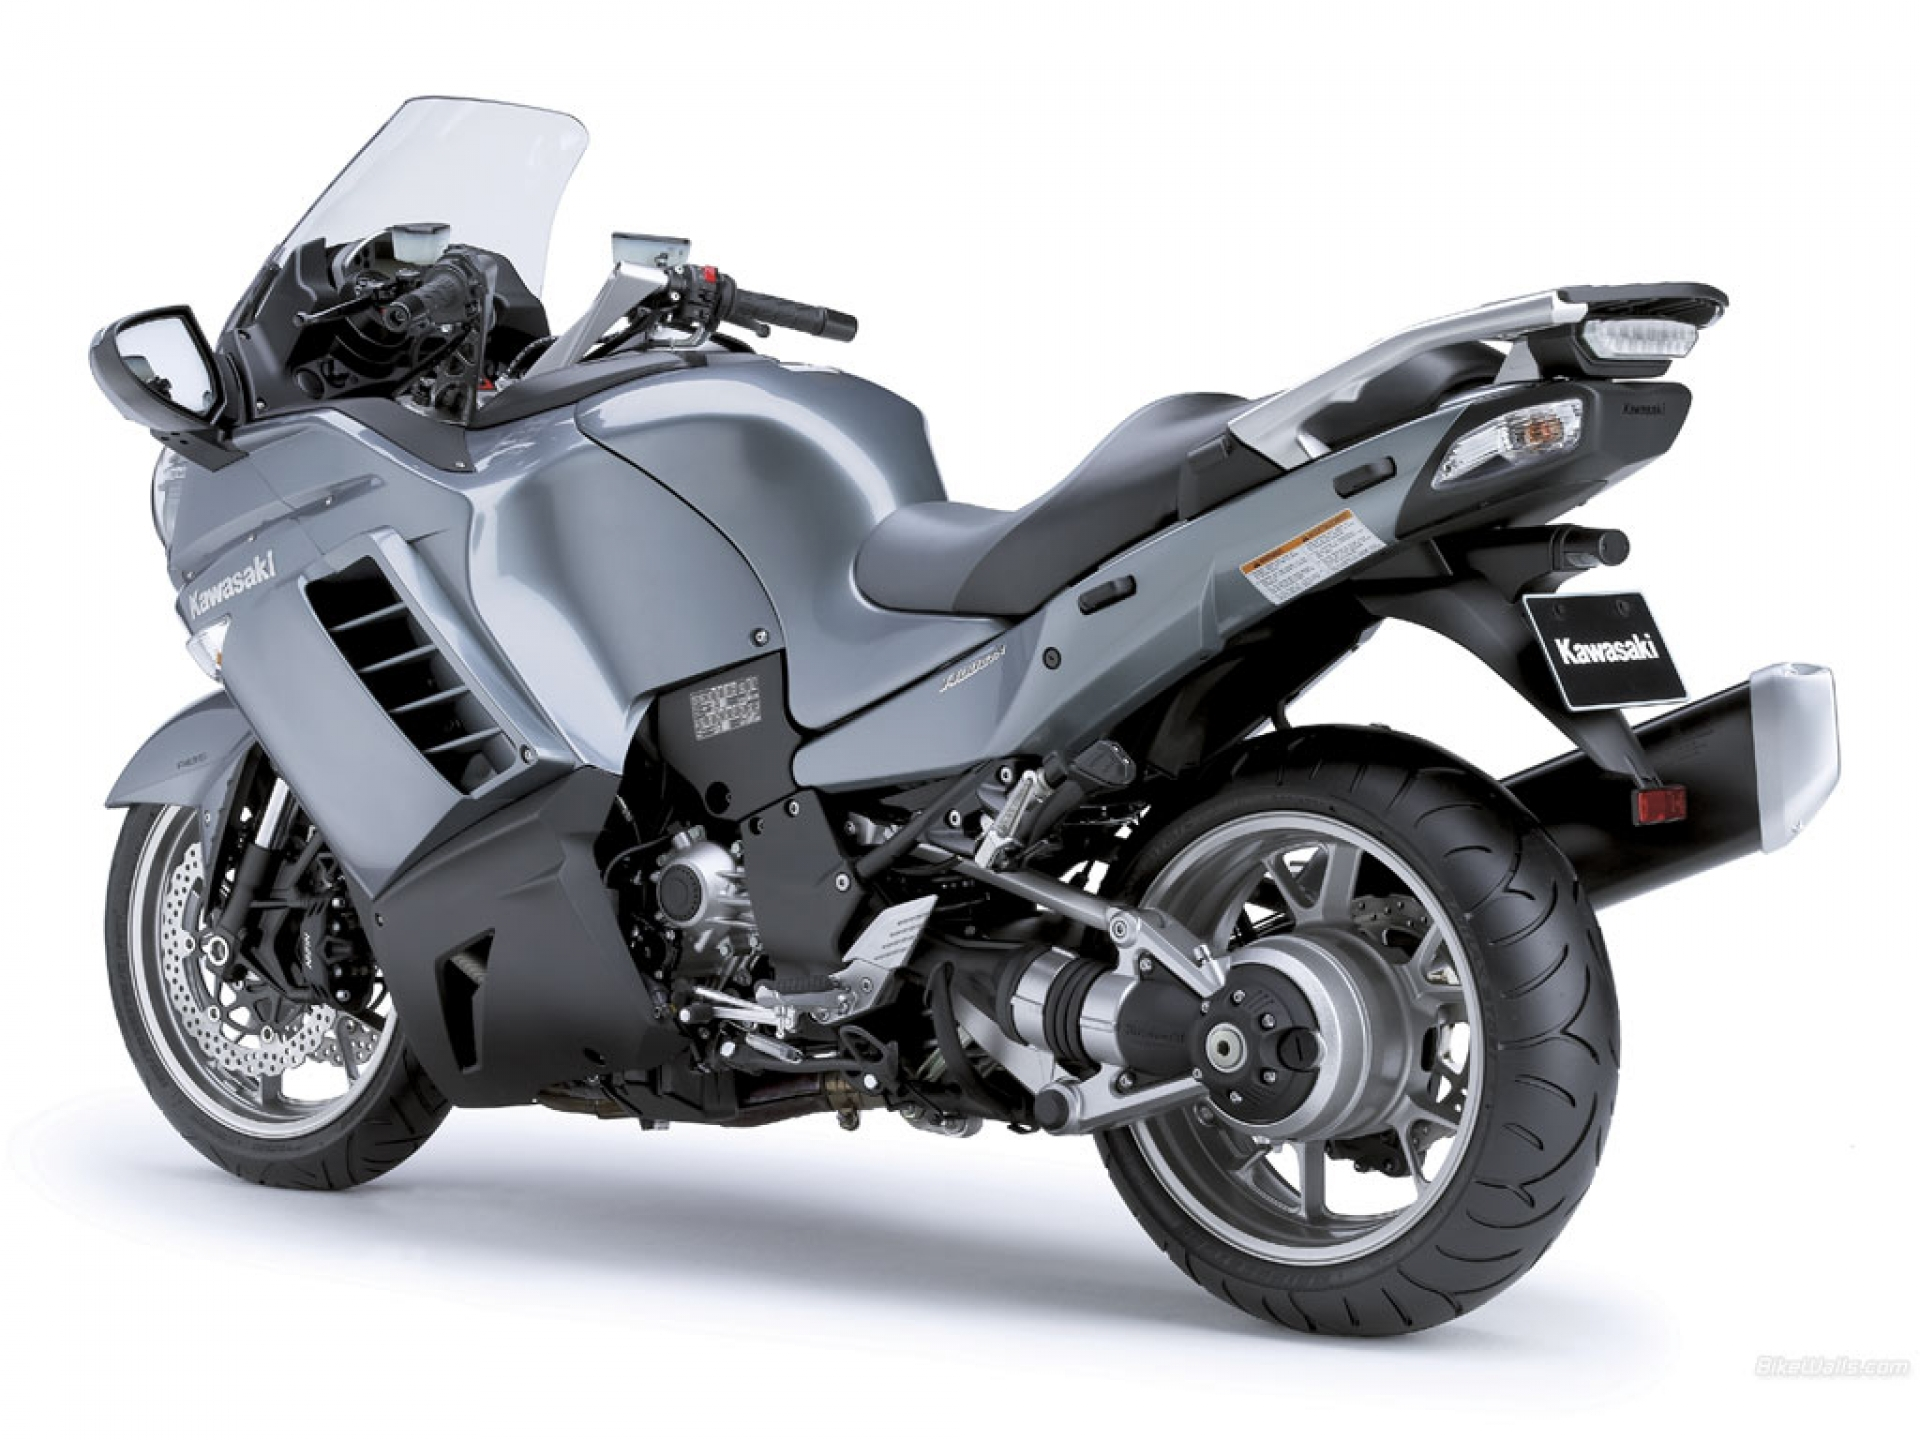 2012 kawasaki 1400 gtr moto zombdrive com. Black Bedroom Furniture Sets. Home Design Ideas